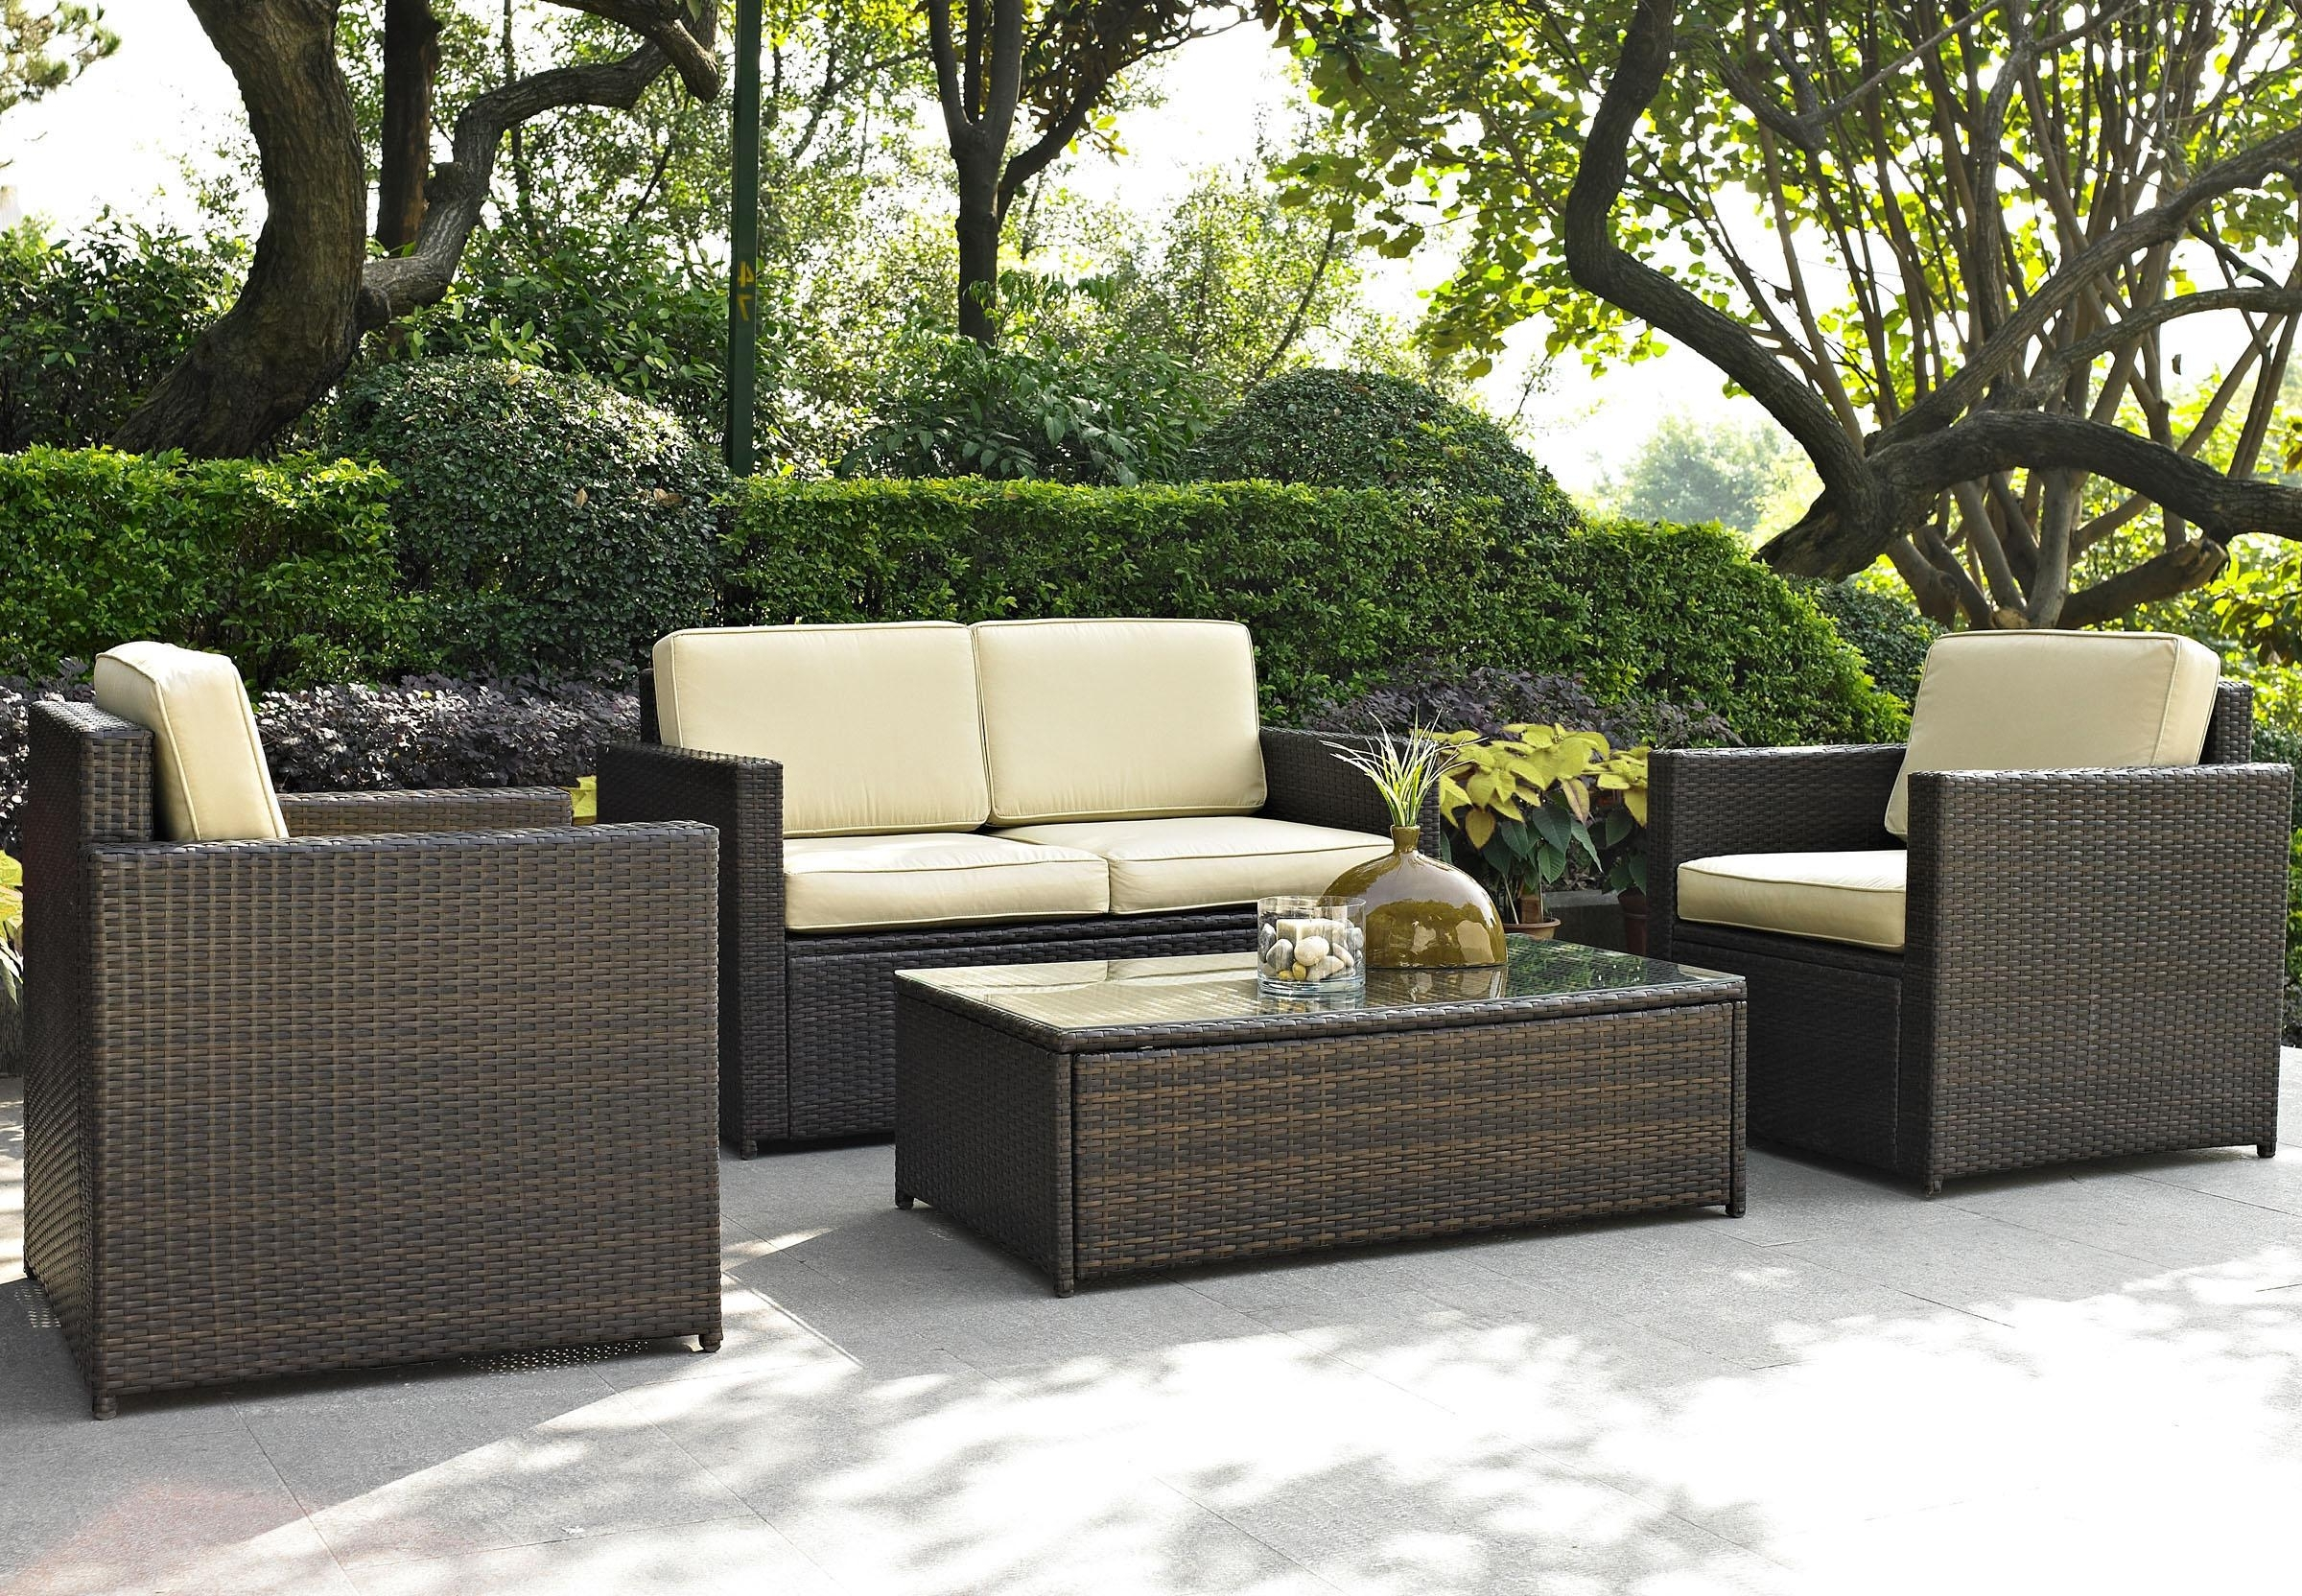 Furniture: Lovely Brown Wicker Chair Outdoor Furniture Design For Well Known Patio Conversation Sets At Walmart (View 5 of 15)